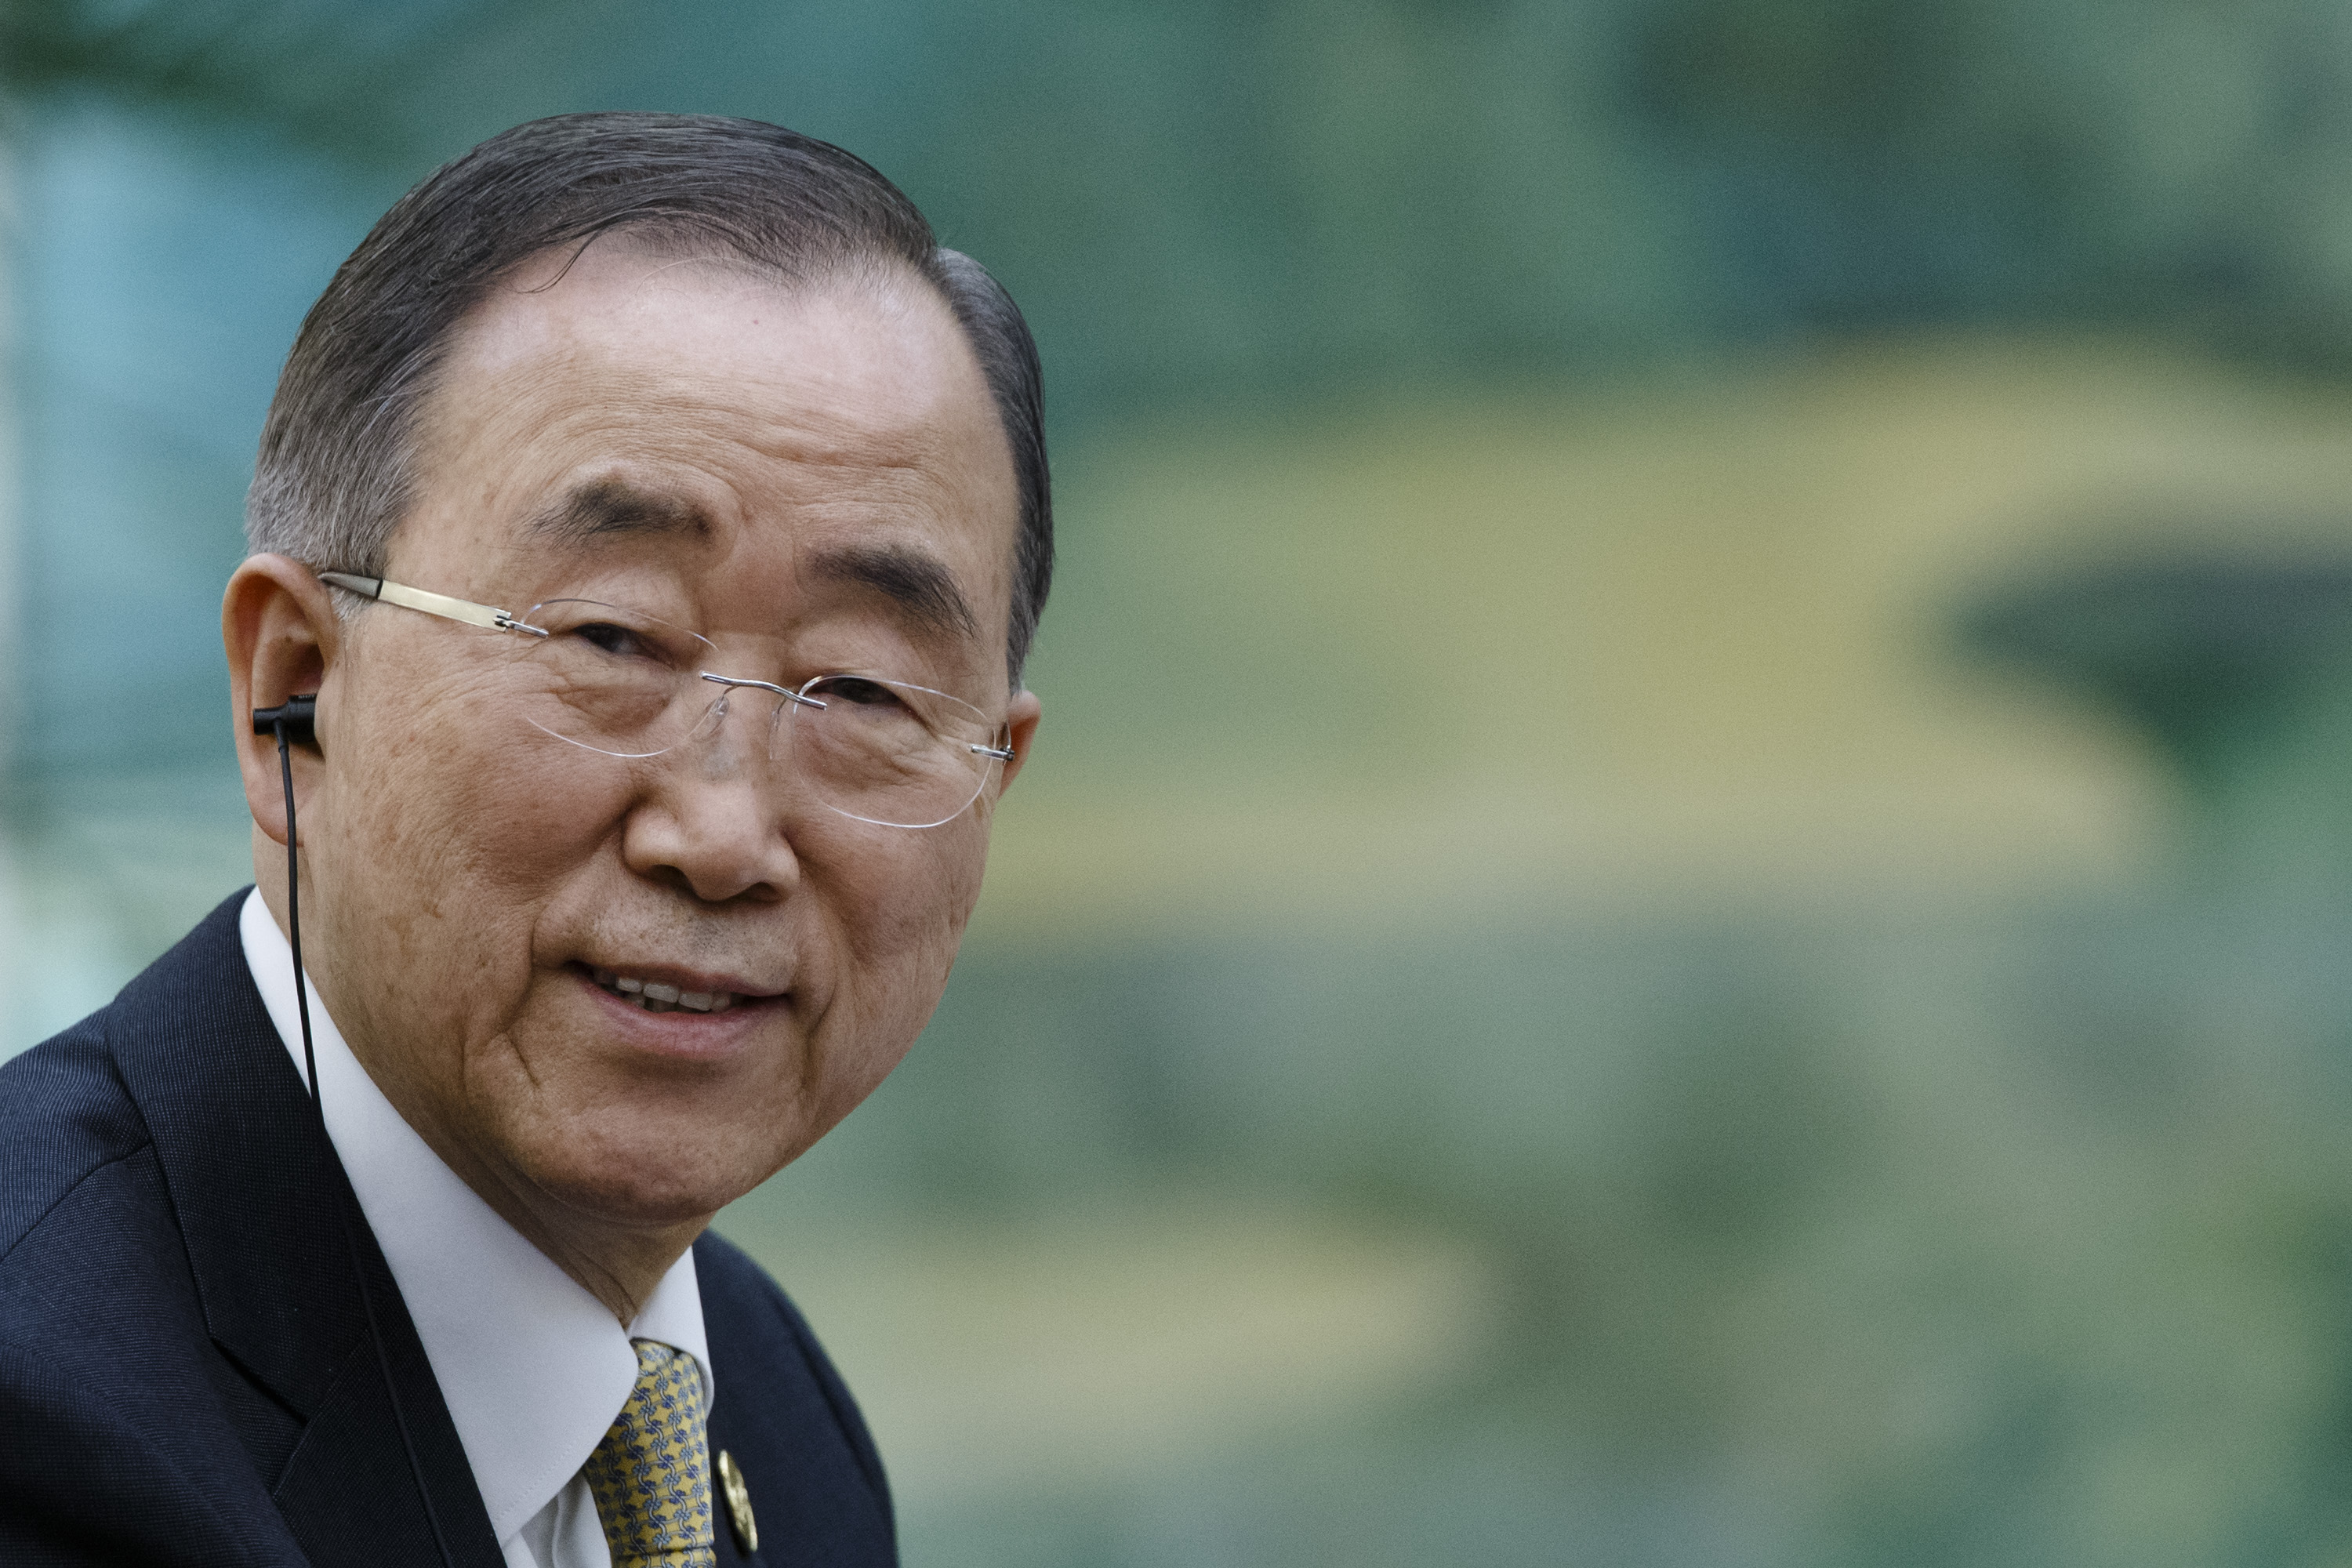 Former UN Secretary-General Ban Ki-Moon pictured at a meeting in Beijing, China.